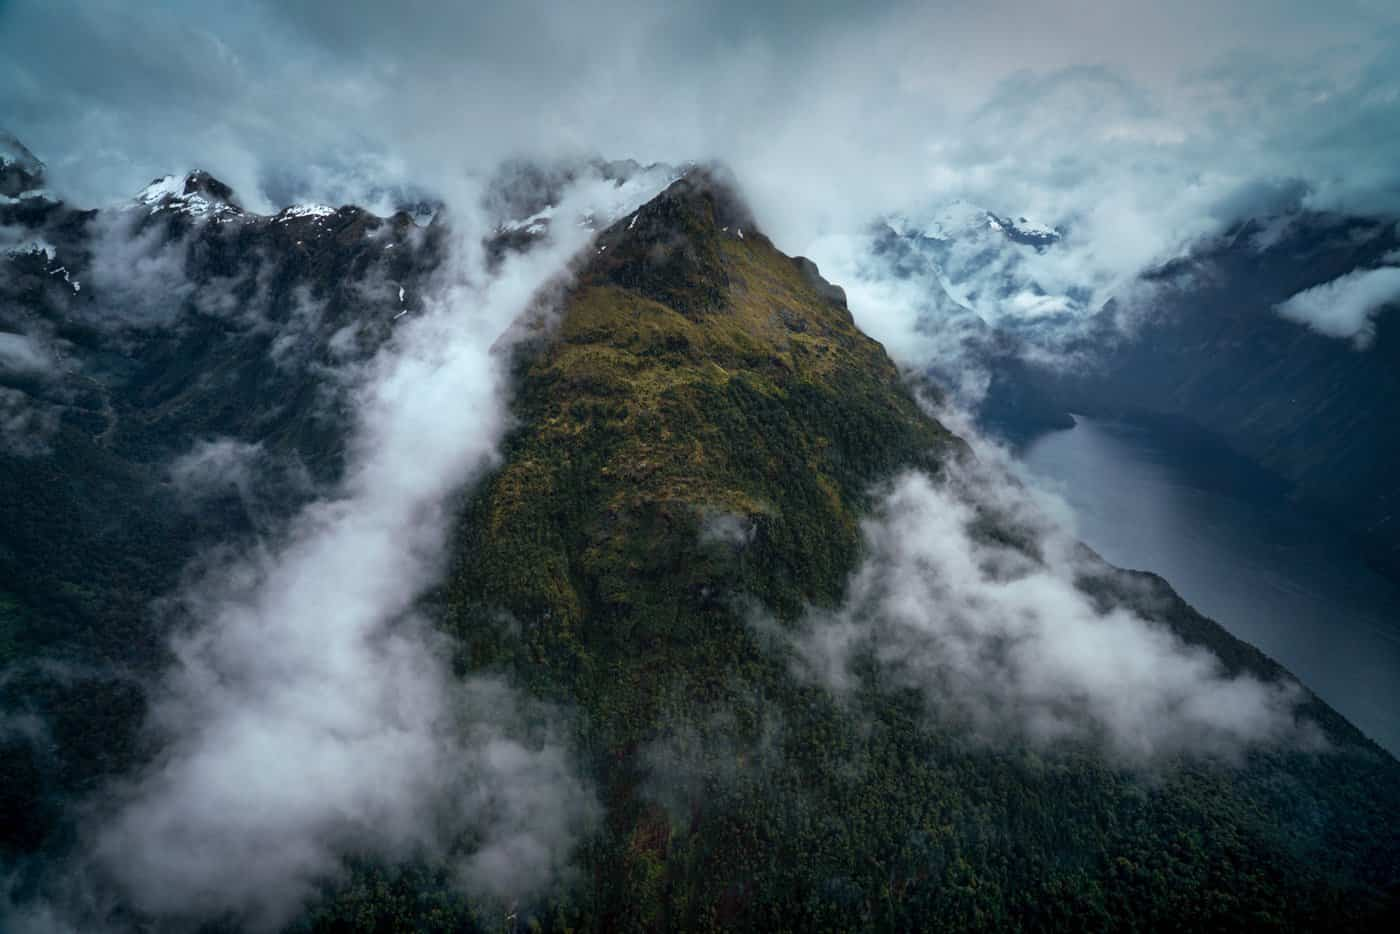 A moody landscape is captured from the sky on our flight to Milford Sound from Queenstown.